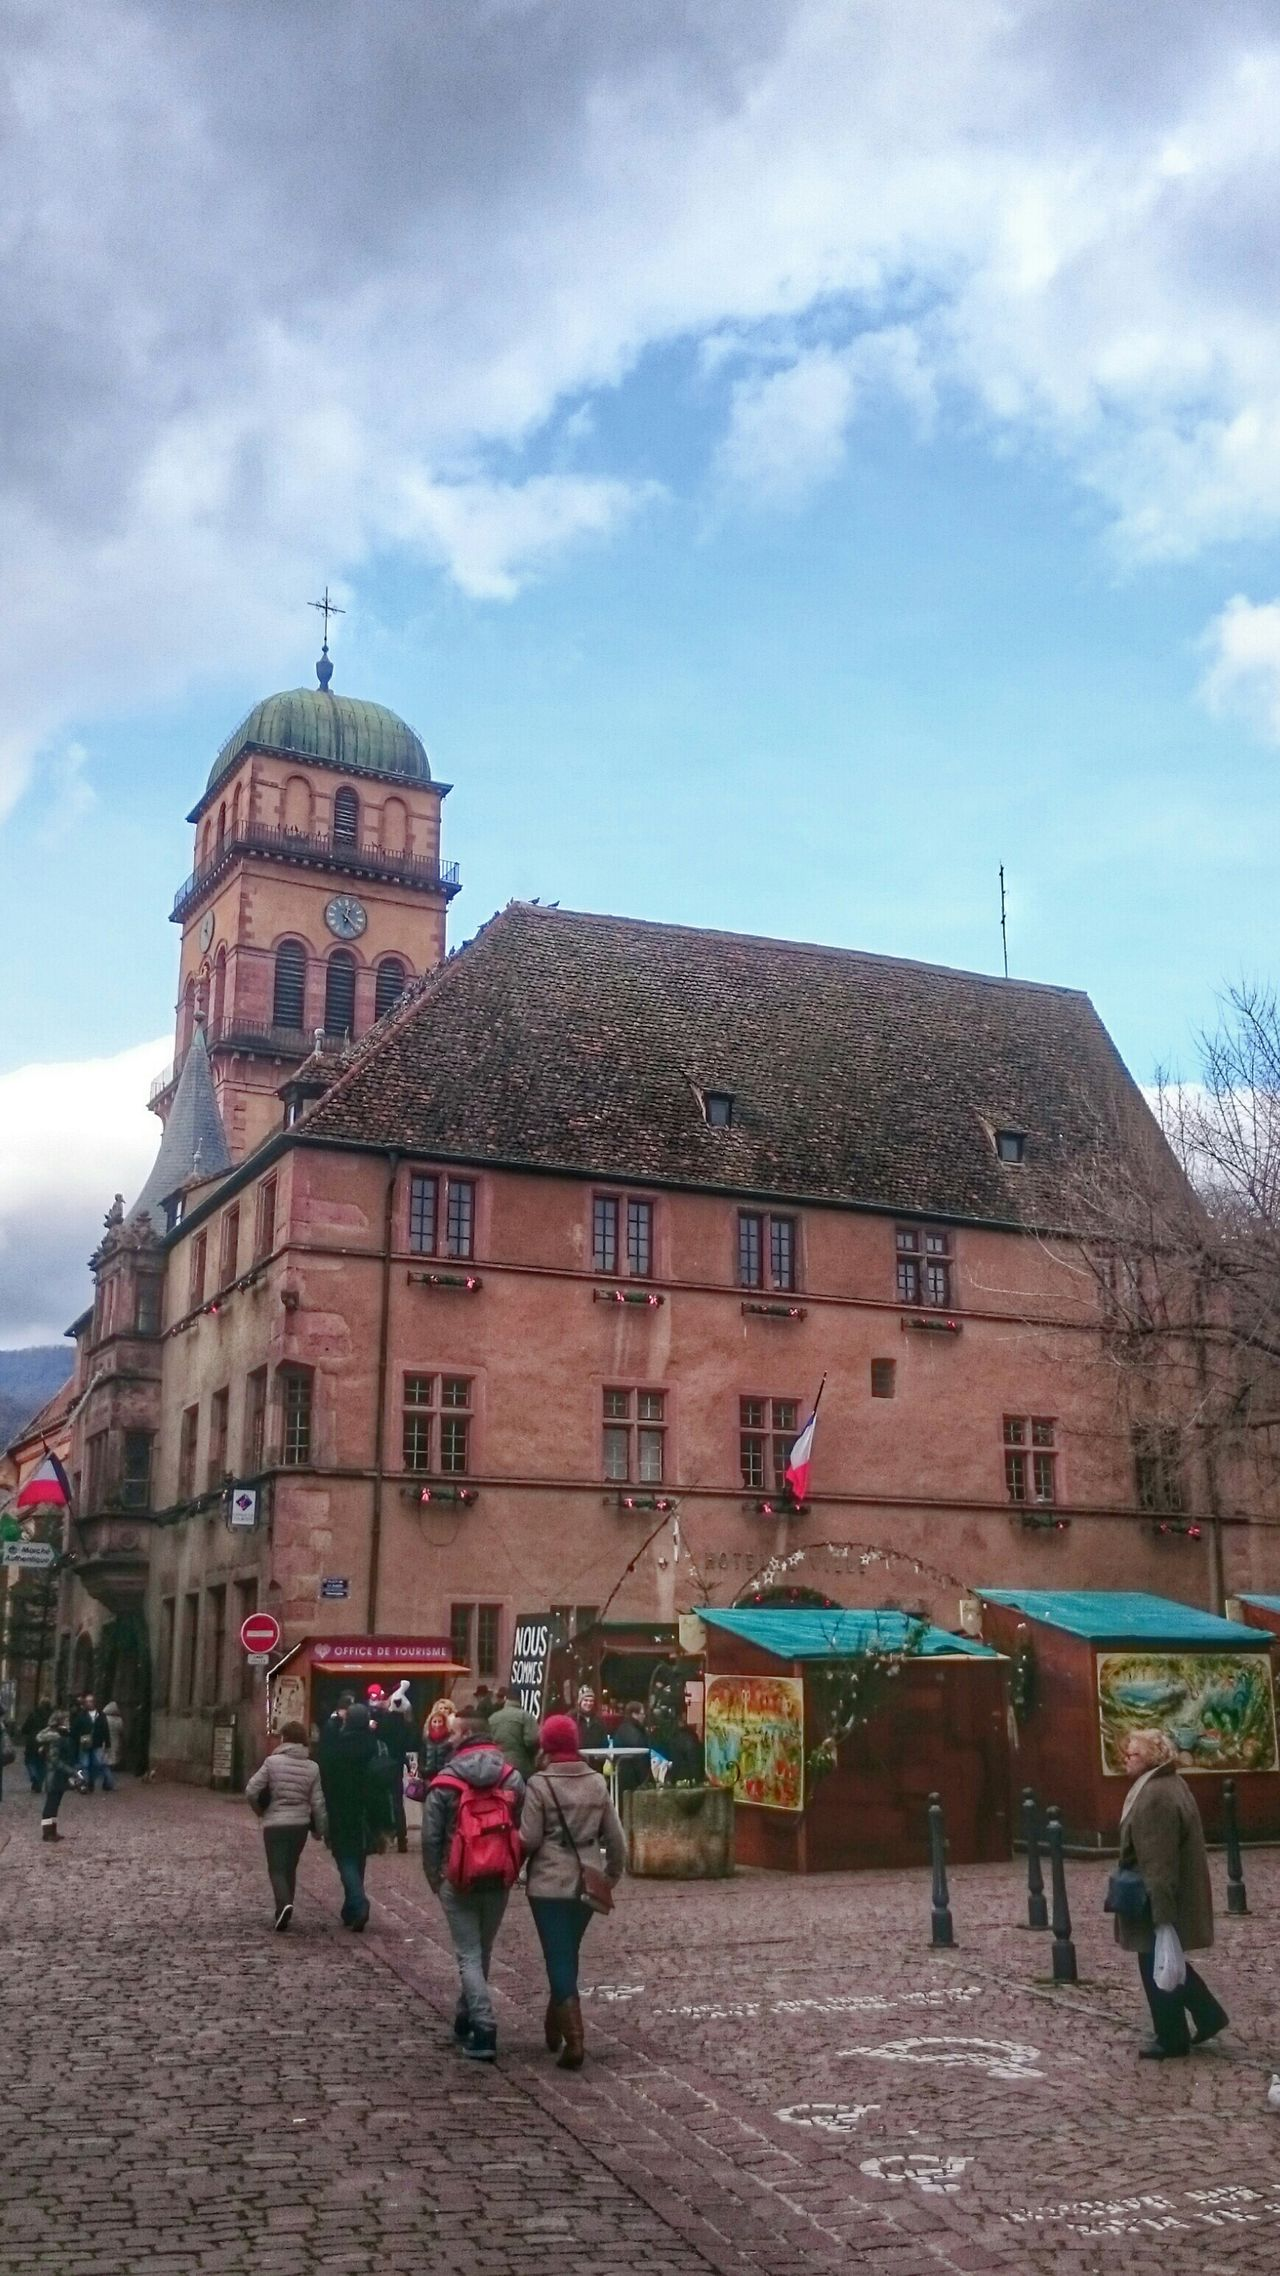 Eglise Sainte Mère Eglise Cathedrale Cathedrals  Religion Religious Architecture Kaysersberg Village Fleuri Villages Beau Village De France Famous Place Alsace Marche Noël Beautiful Alsace Alsace France Countryside Vineyard Vineyards  Vineyardvines